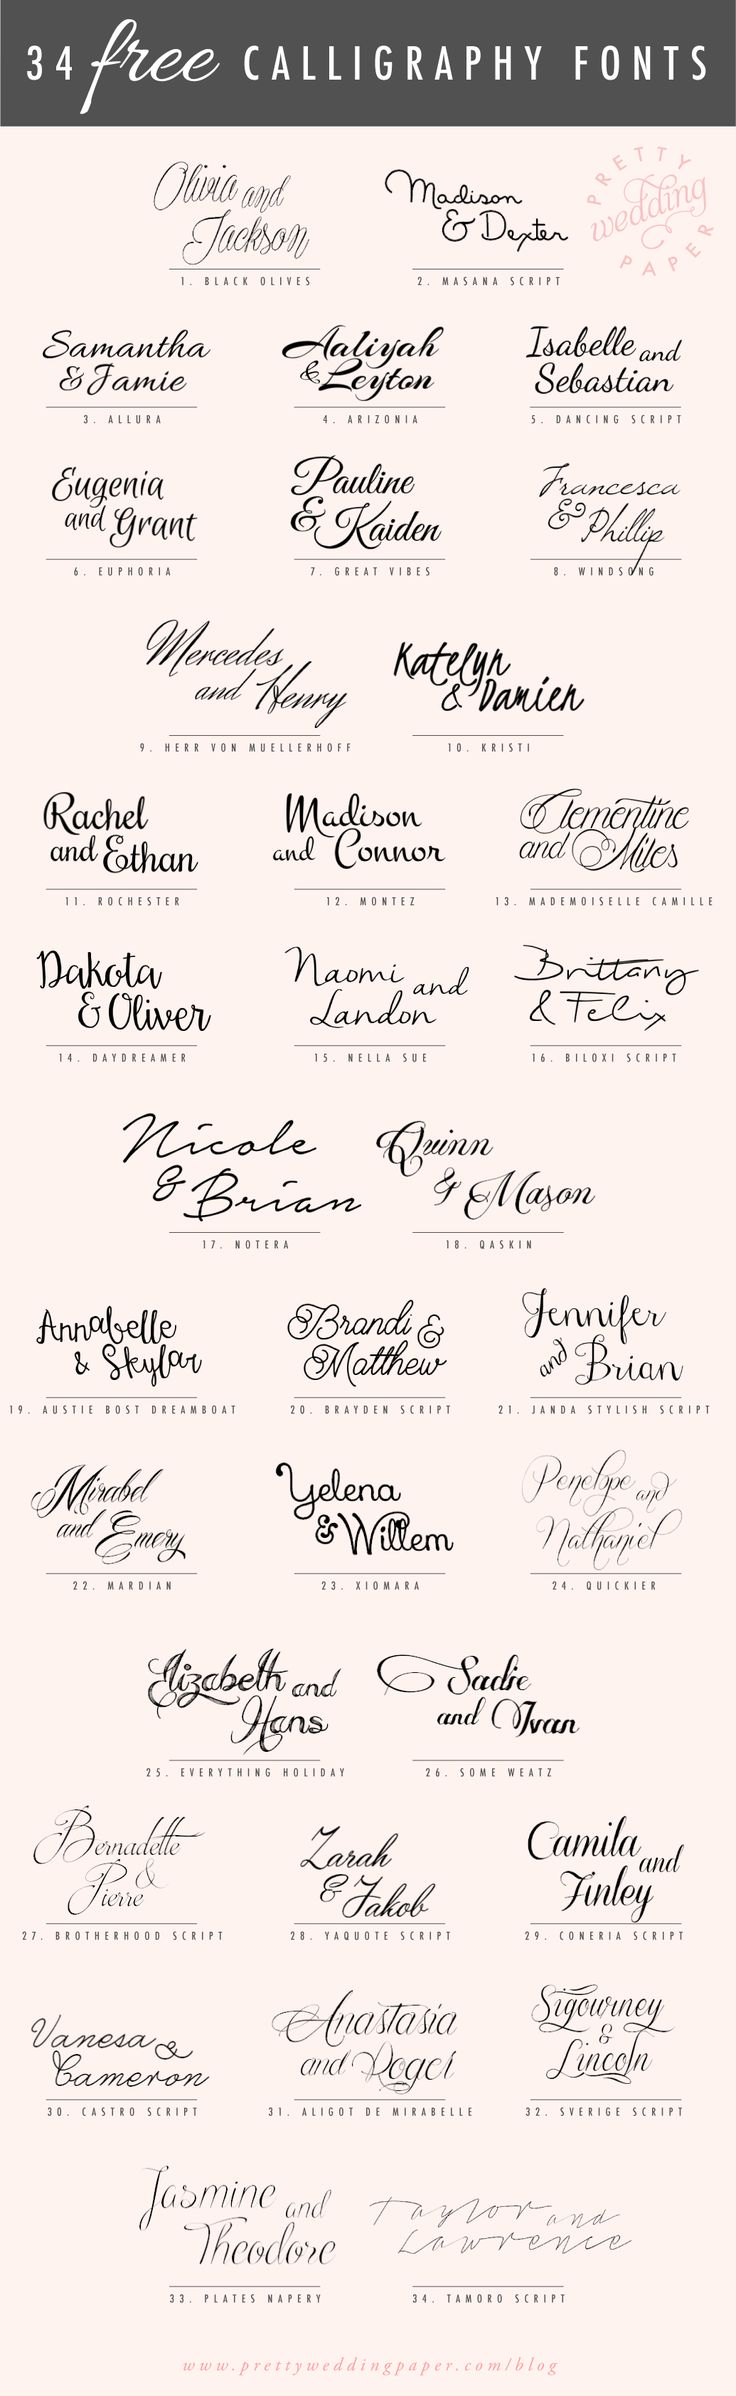 awesome list of free handlettered calligraphic script fonts